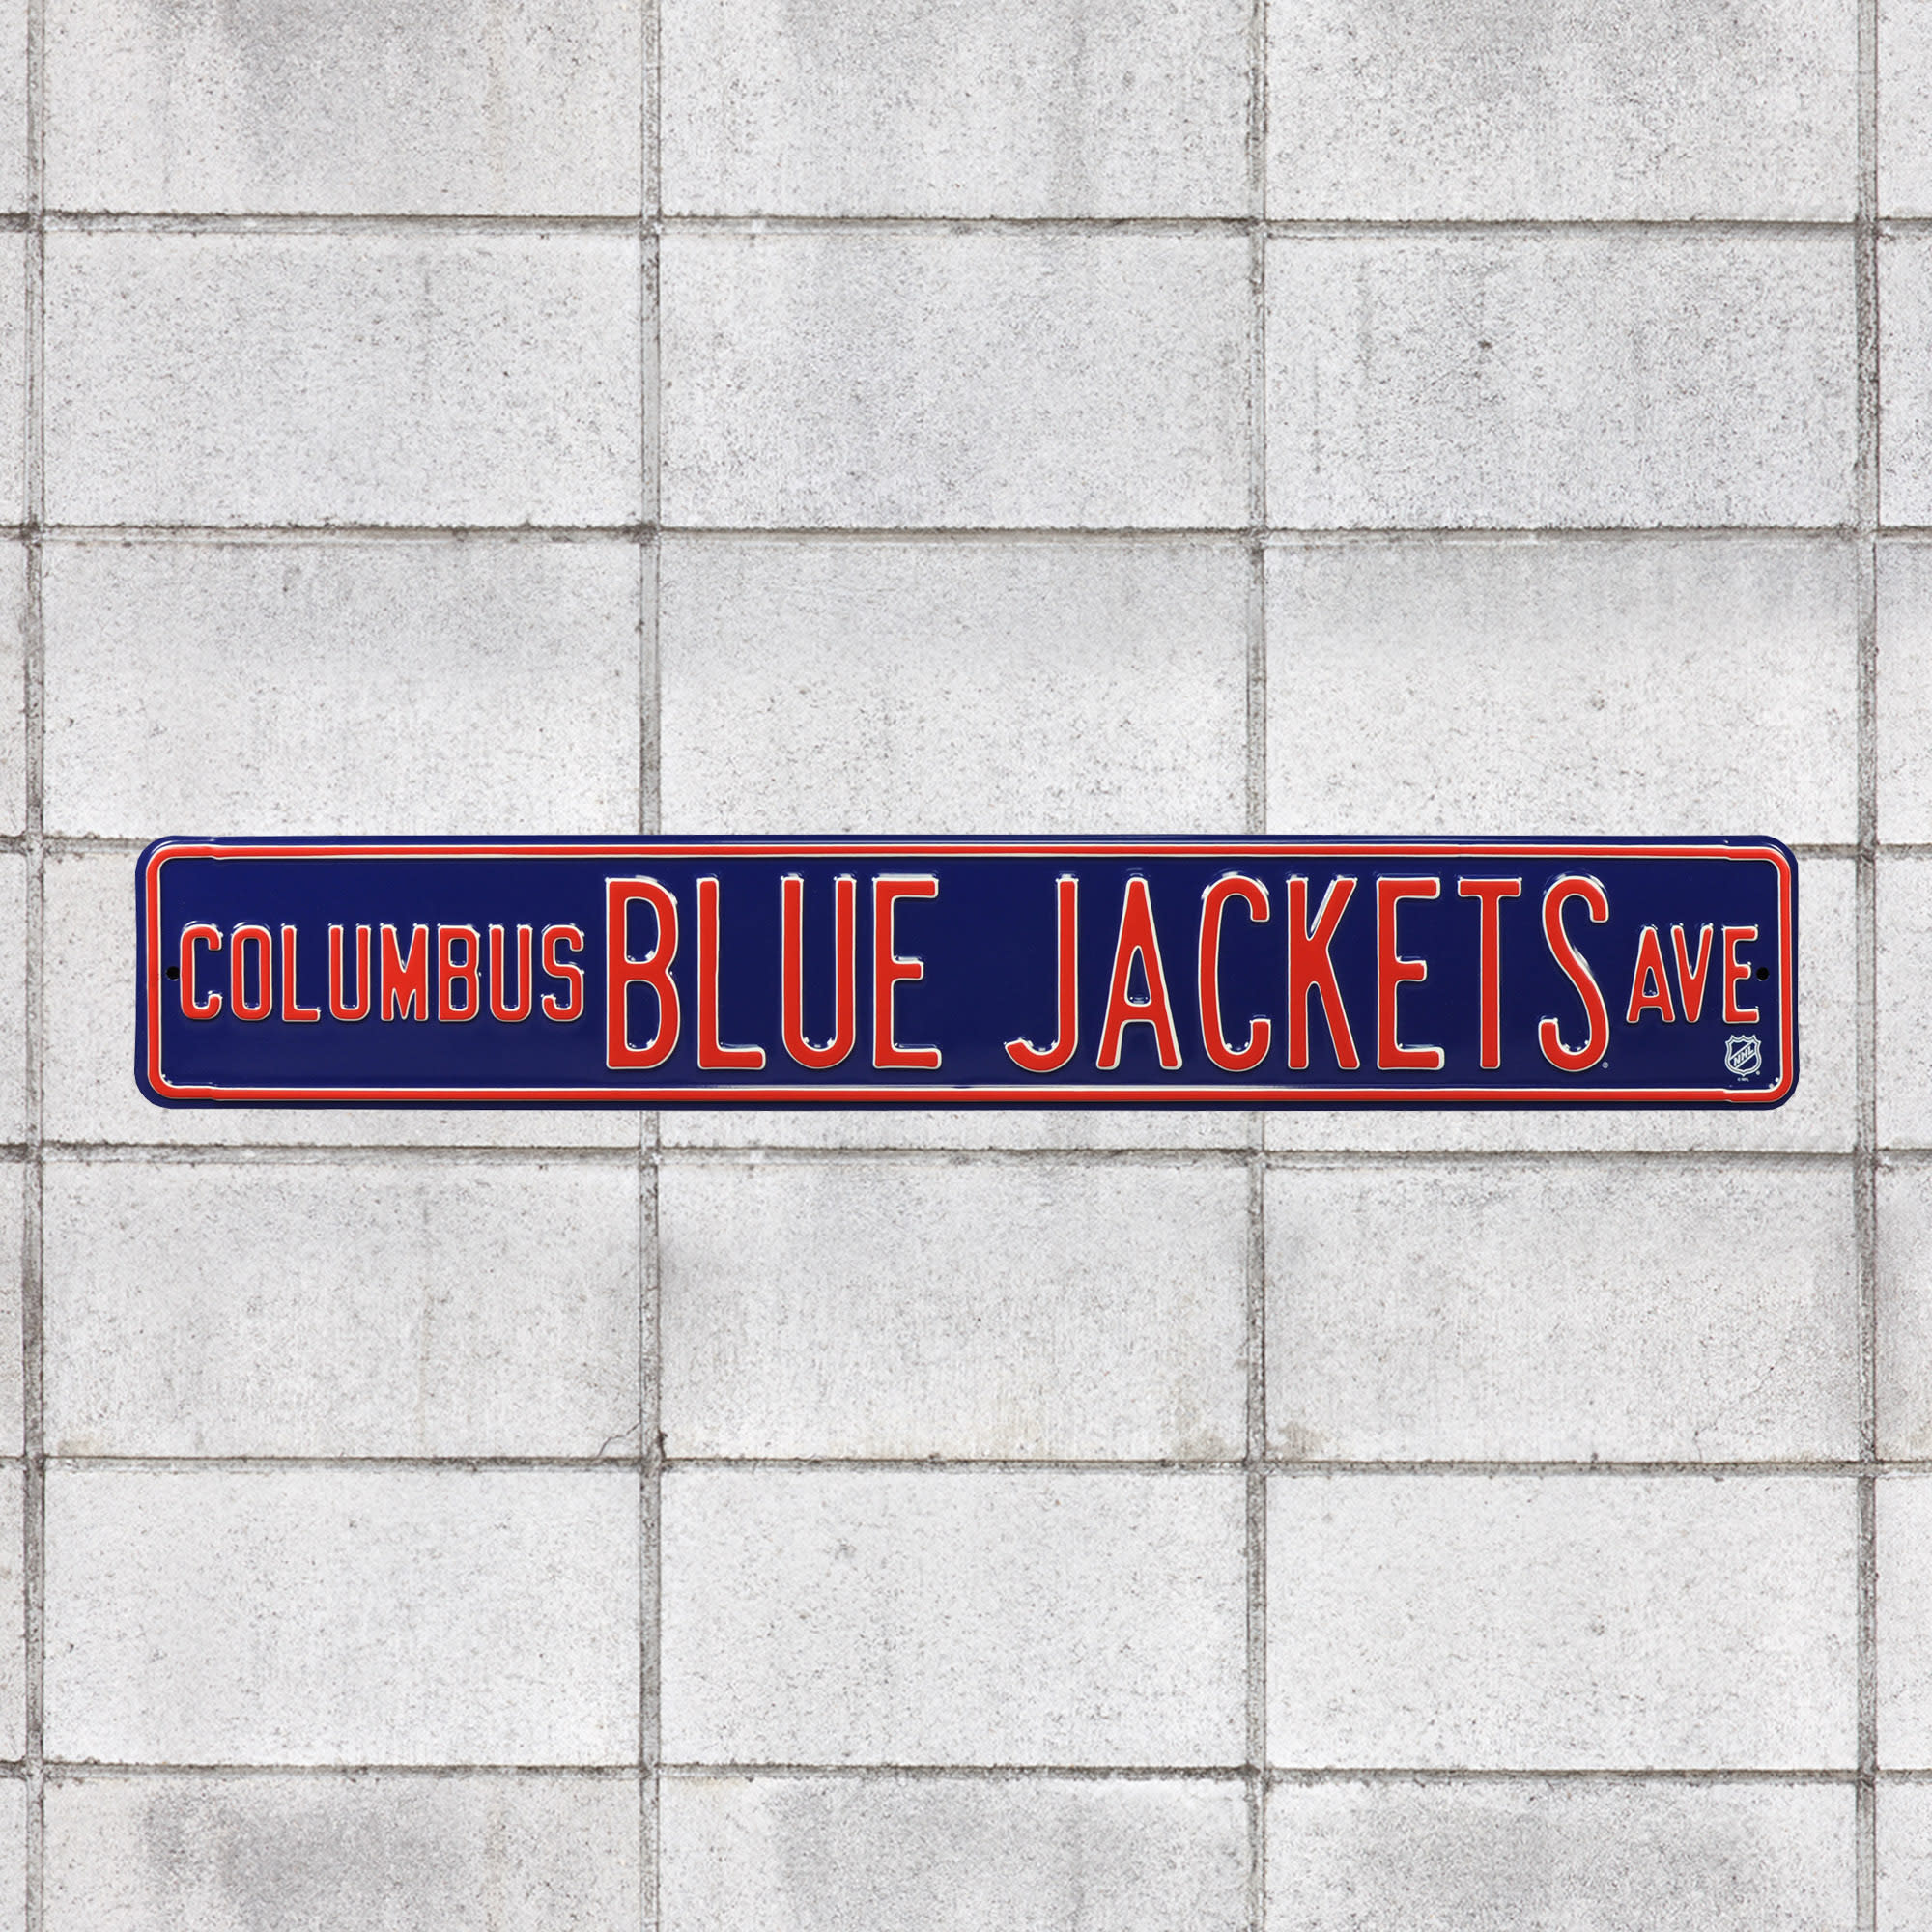 """Columbus Blue Jackets: Columbus Blue Jackets Avenue - Officially Licensed NHL Metal Street Sign 36.0""""W x 6.0""""H by Fathead   100%"""